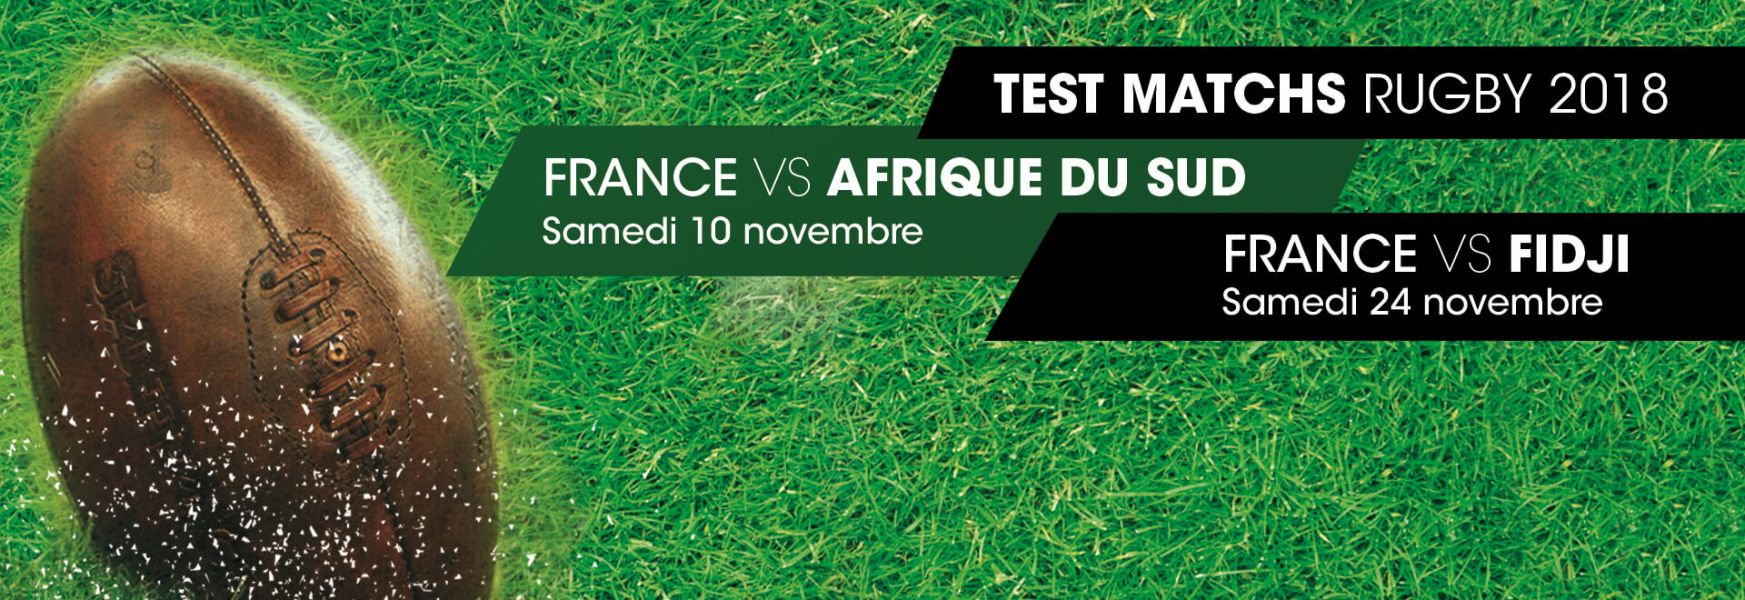 Test matchs Rugby 2018 France vs Afrique du Sud et France vs Fidji au Stade de France